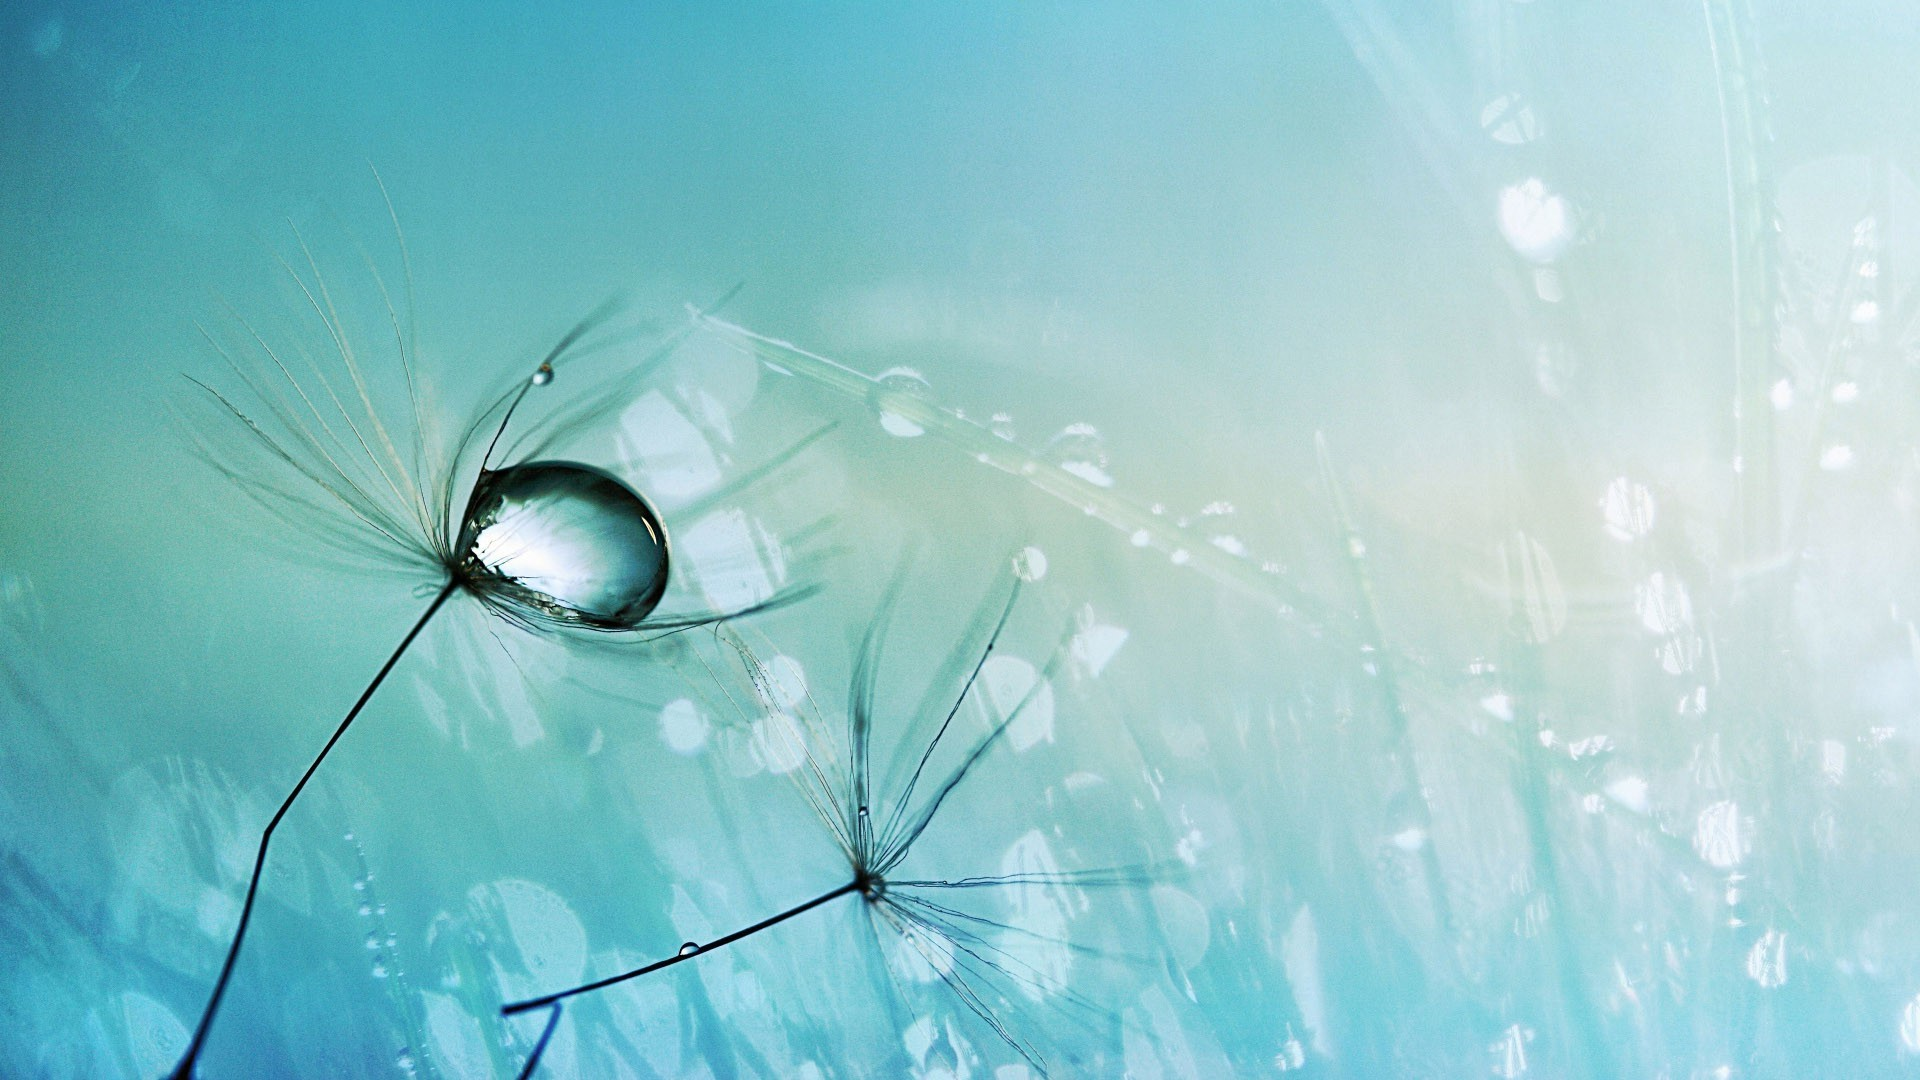 Dew drops on dandelion seeds wallpaper #10769